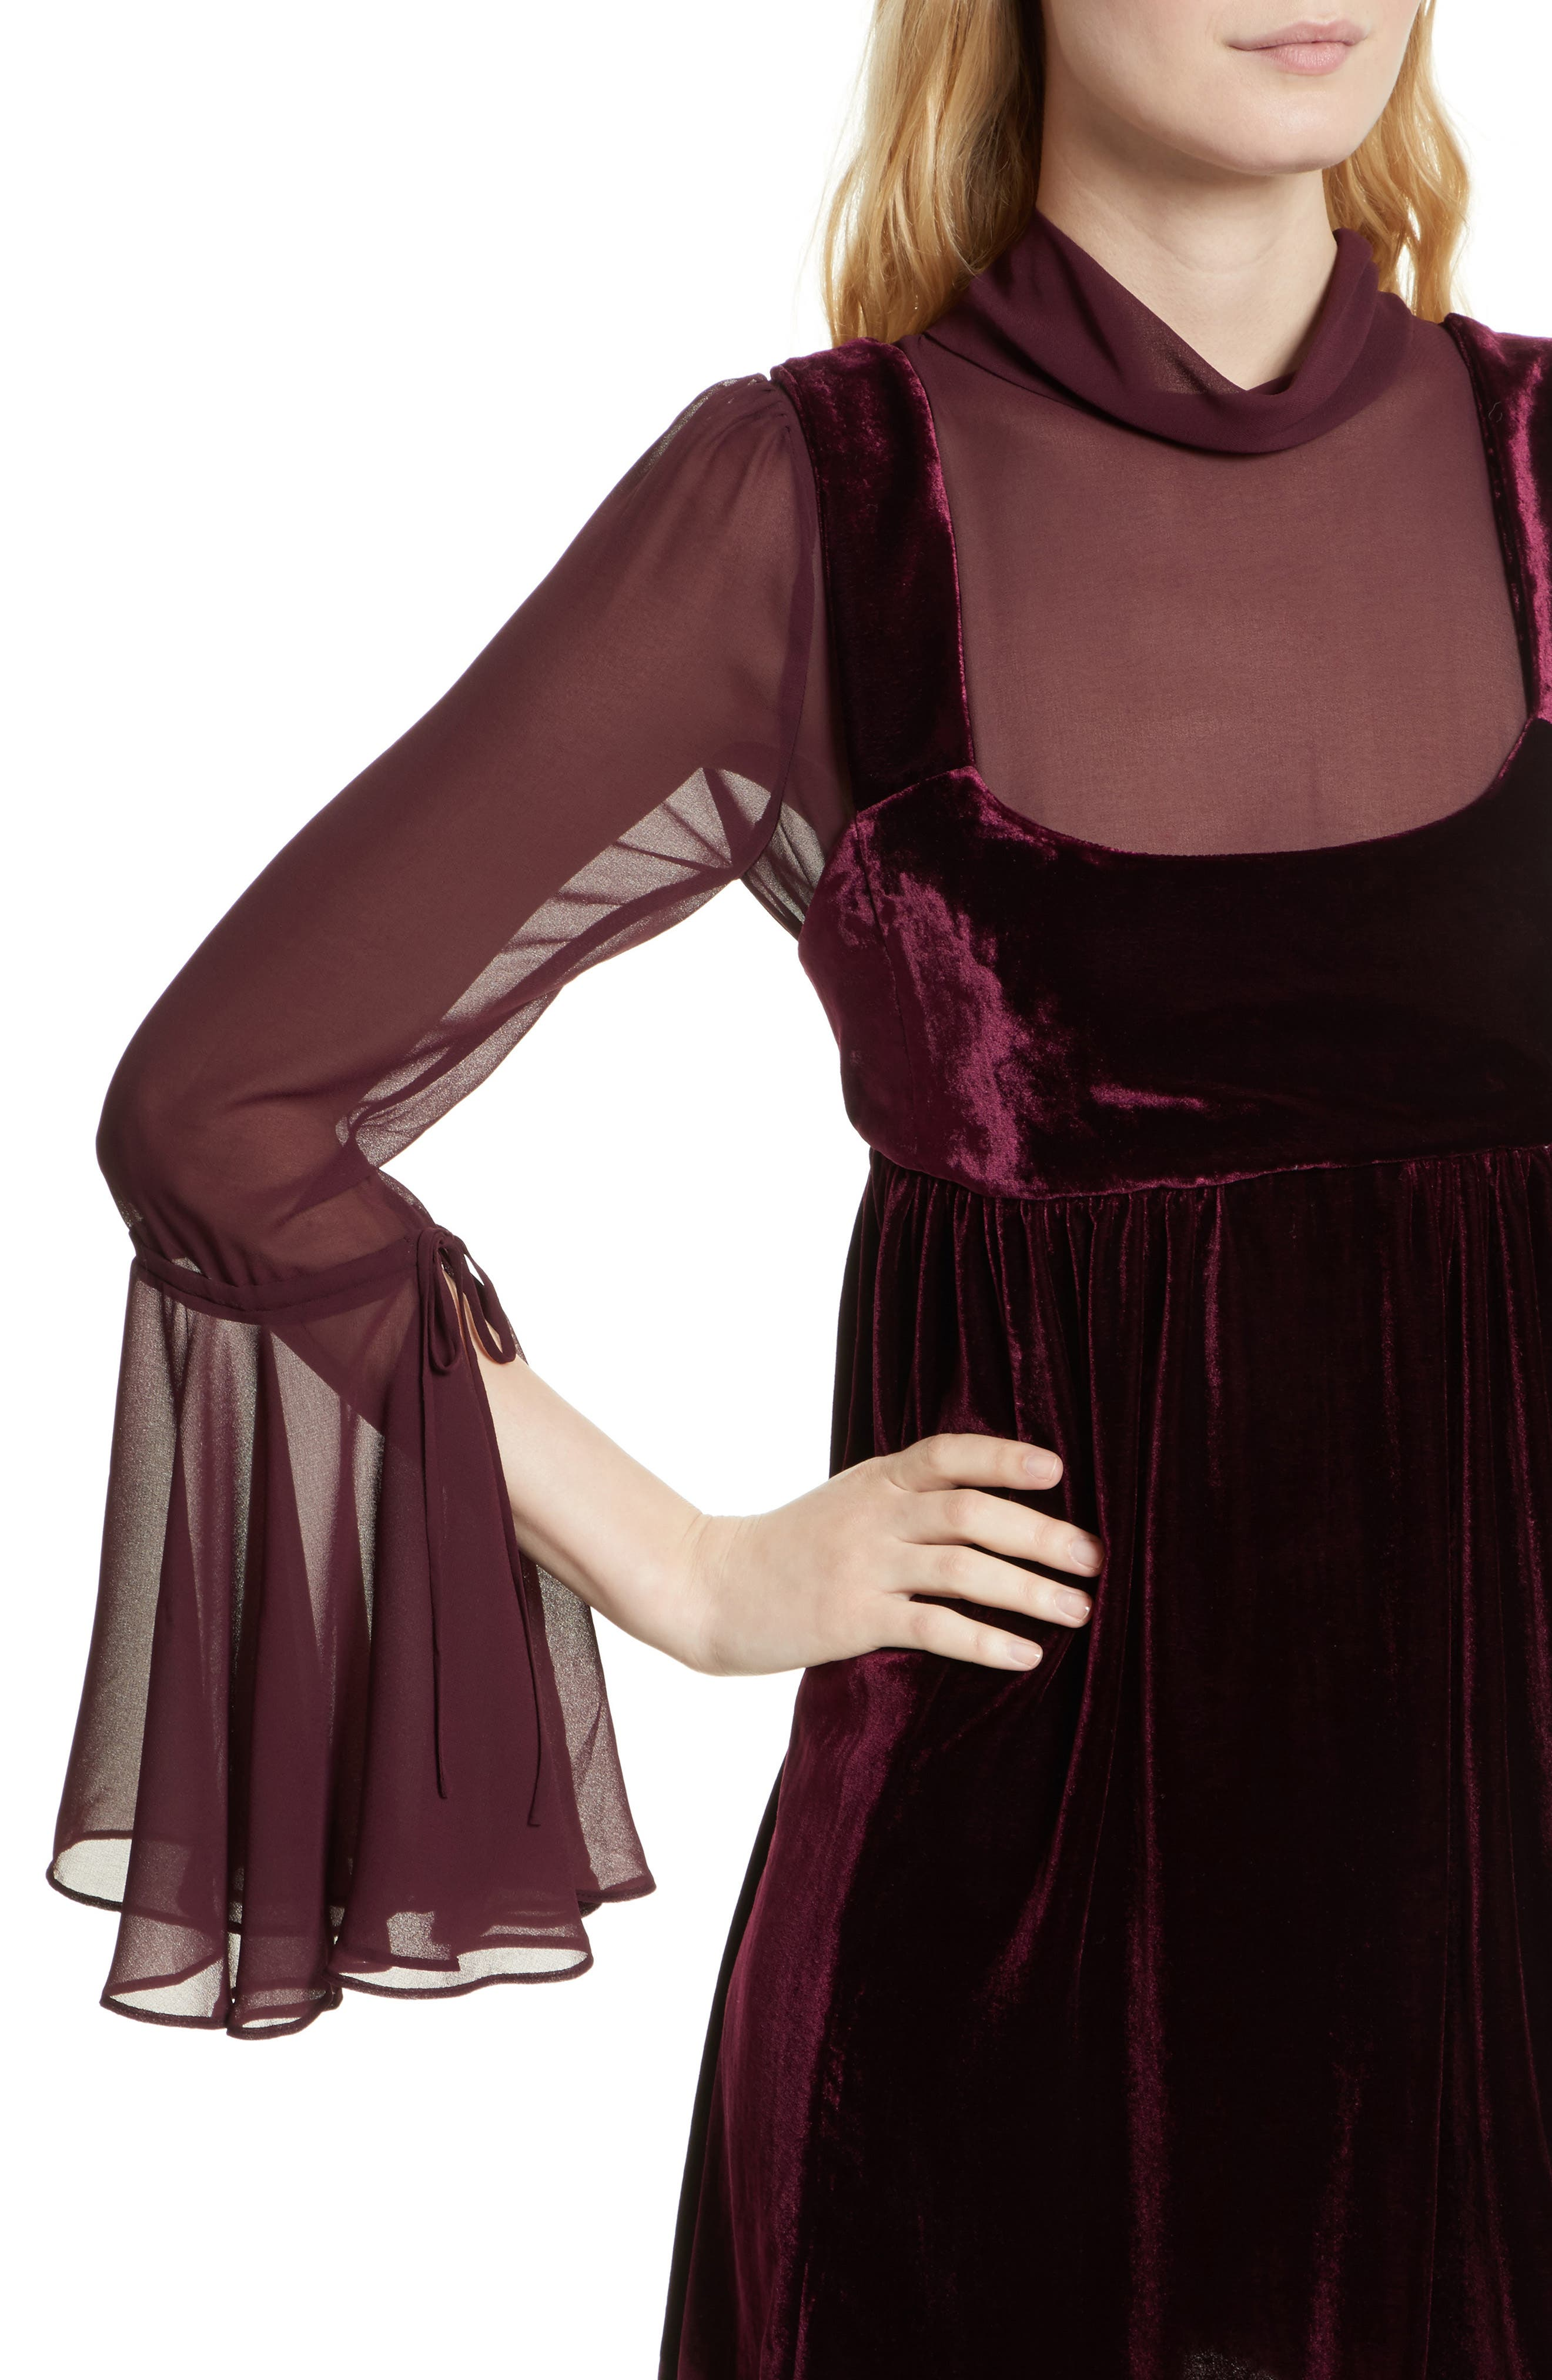 Counting Stars Minidress,                             Alternate thumbnail 4, color,                             Wine